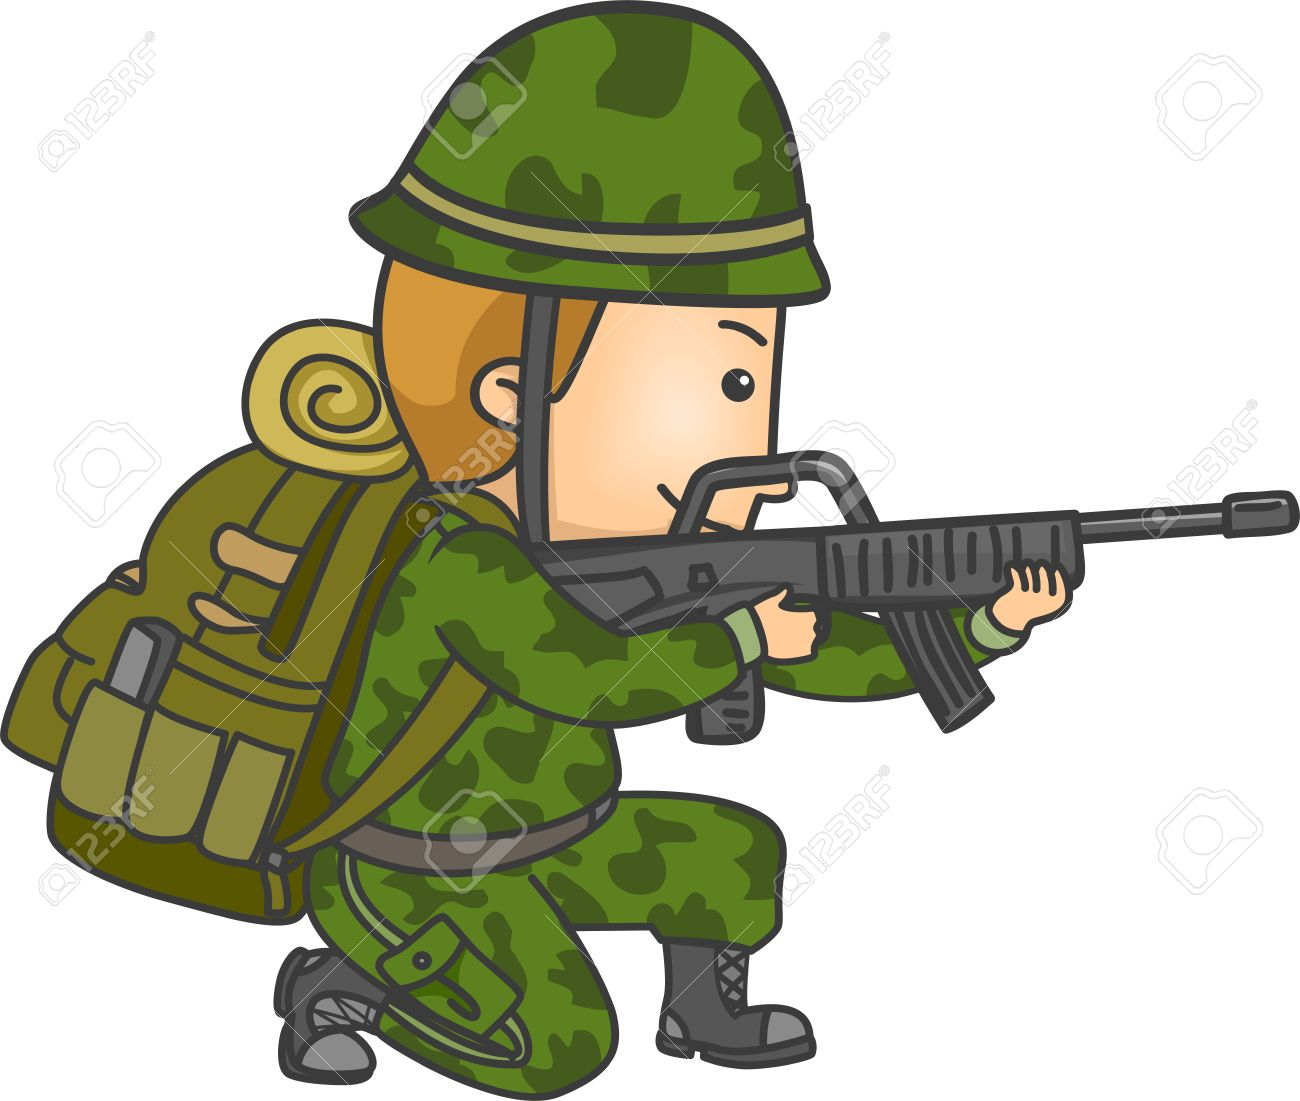 illustration of a soldier in camouflage uniform holding a rifle rh 123rf com camouflage frame clip art camouflage frame clip art